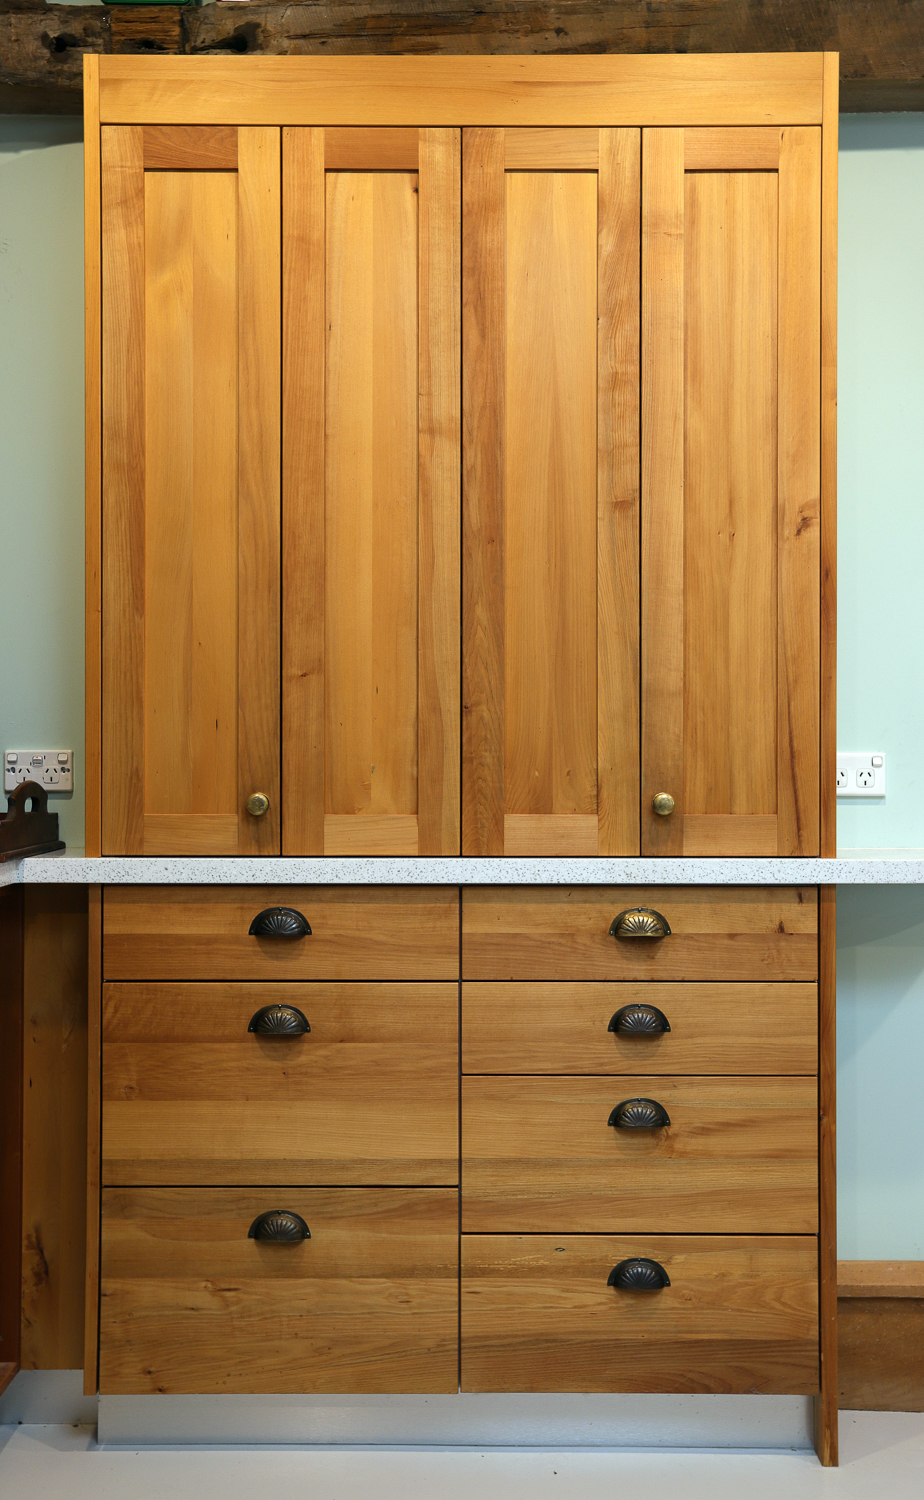 An on-bench pantry made from milled native timber found on a beach